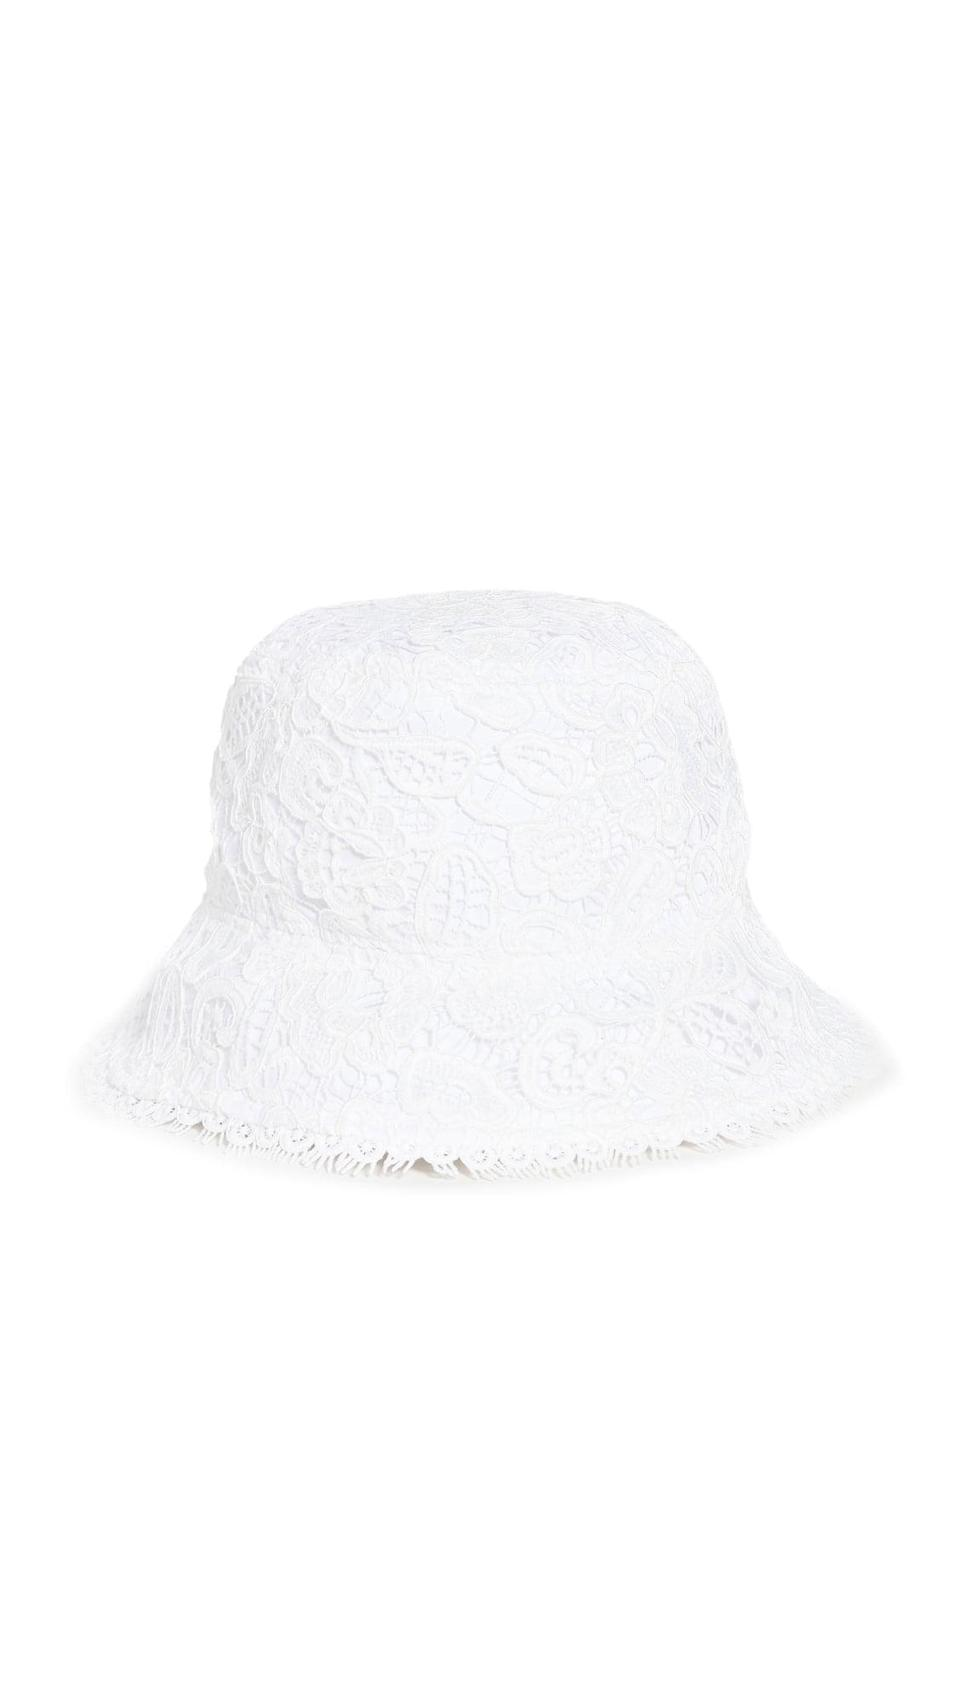 <p>Grab a bucket hat this summer to wear at the beach or poolside, like this <span>STAUD Lace Bucket Hat</span> ($125). It protects your skin and adds just the right amount of early 2000 nostalgia. </p>